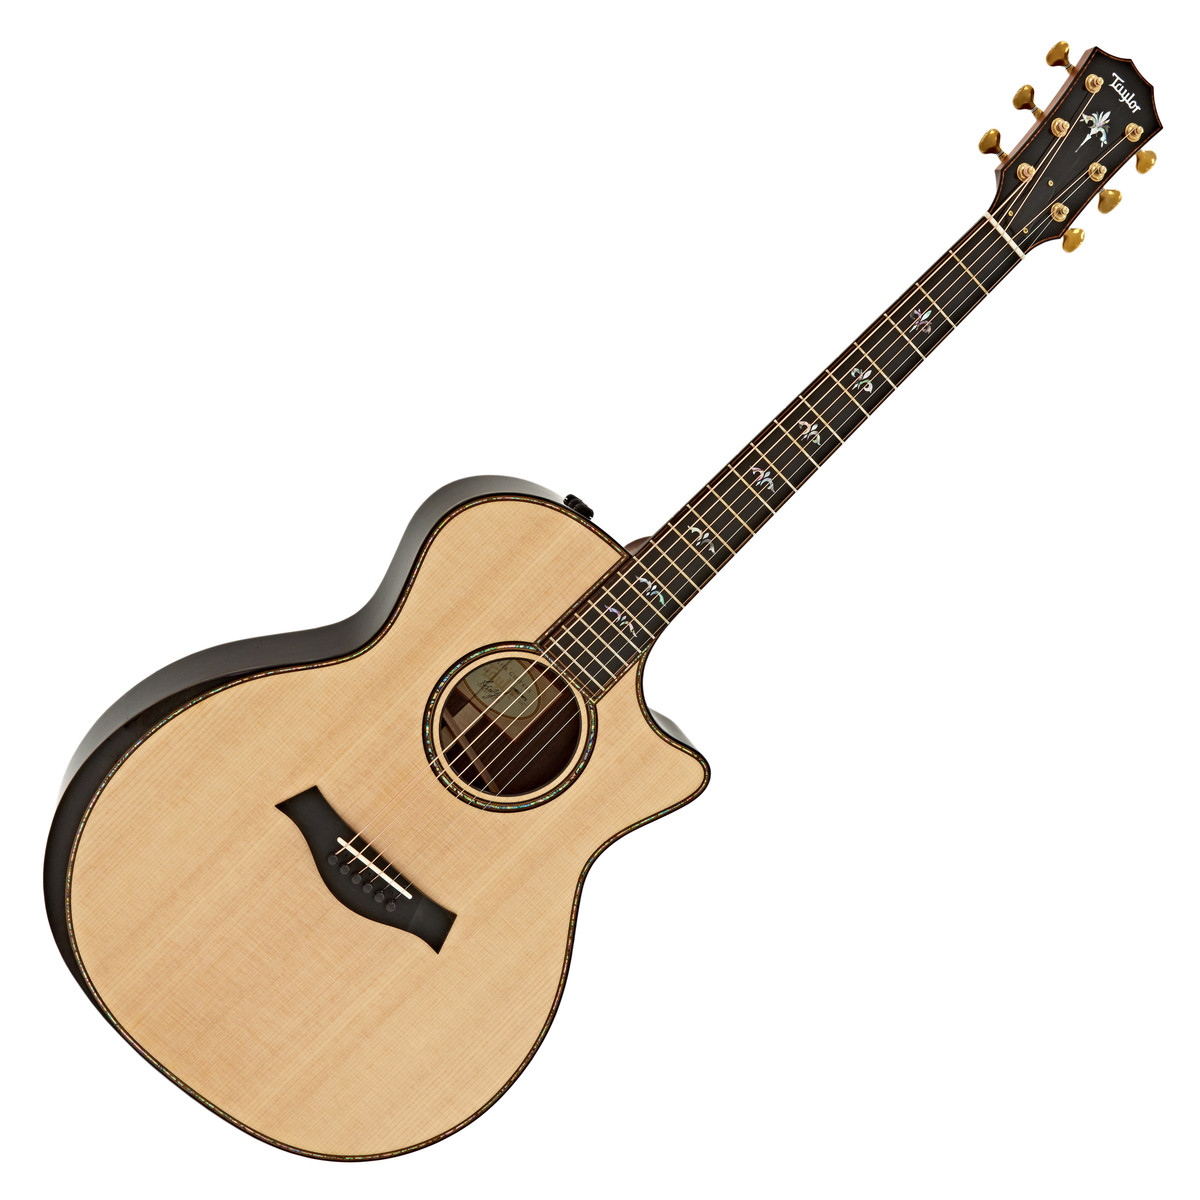 Taylor 914ce Electro Acoustic Guitar at Gear4music.com